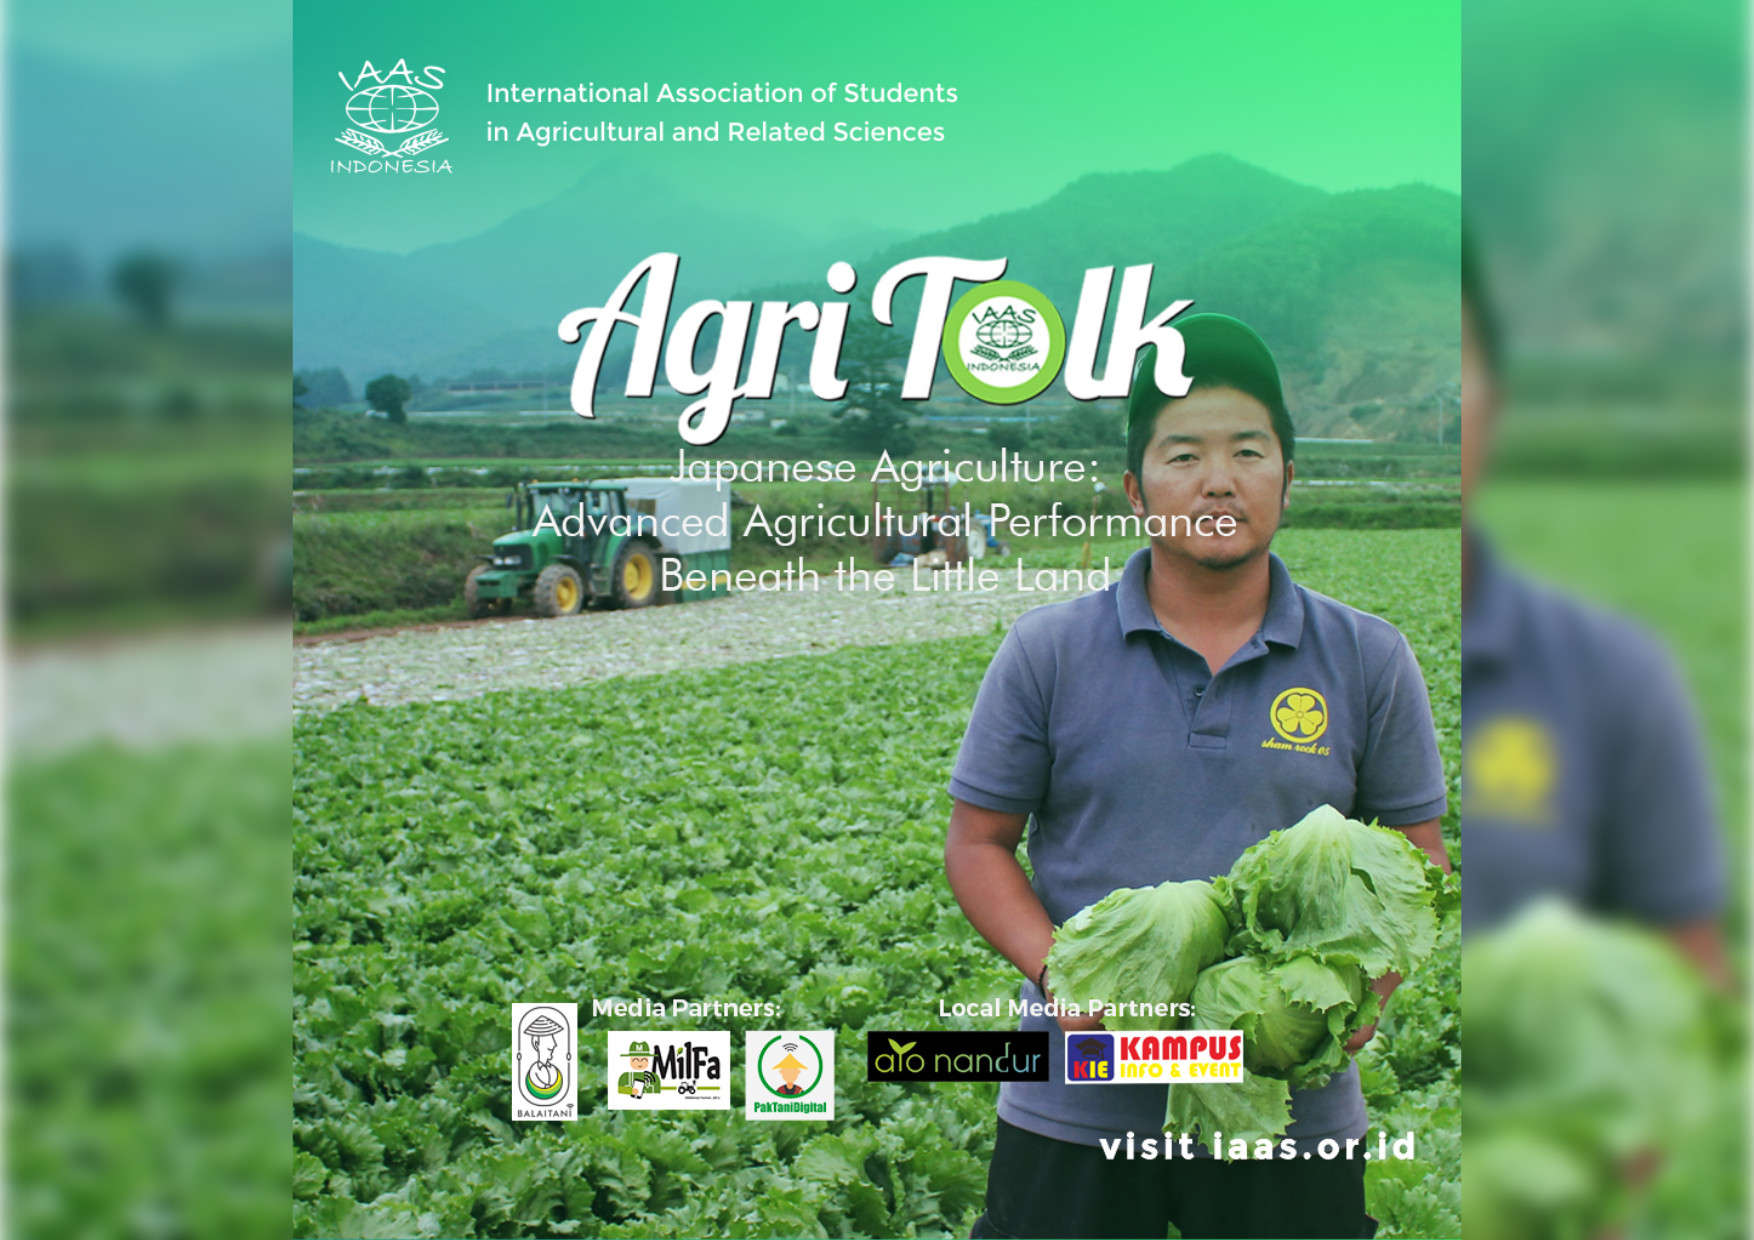 Agritalk - Japanese Agriculture